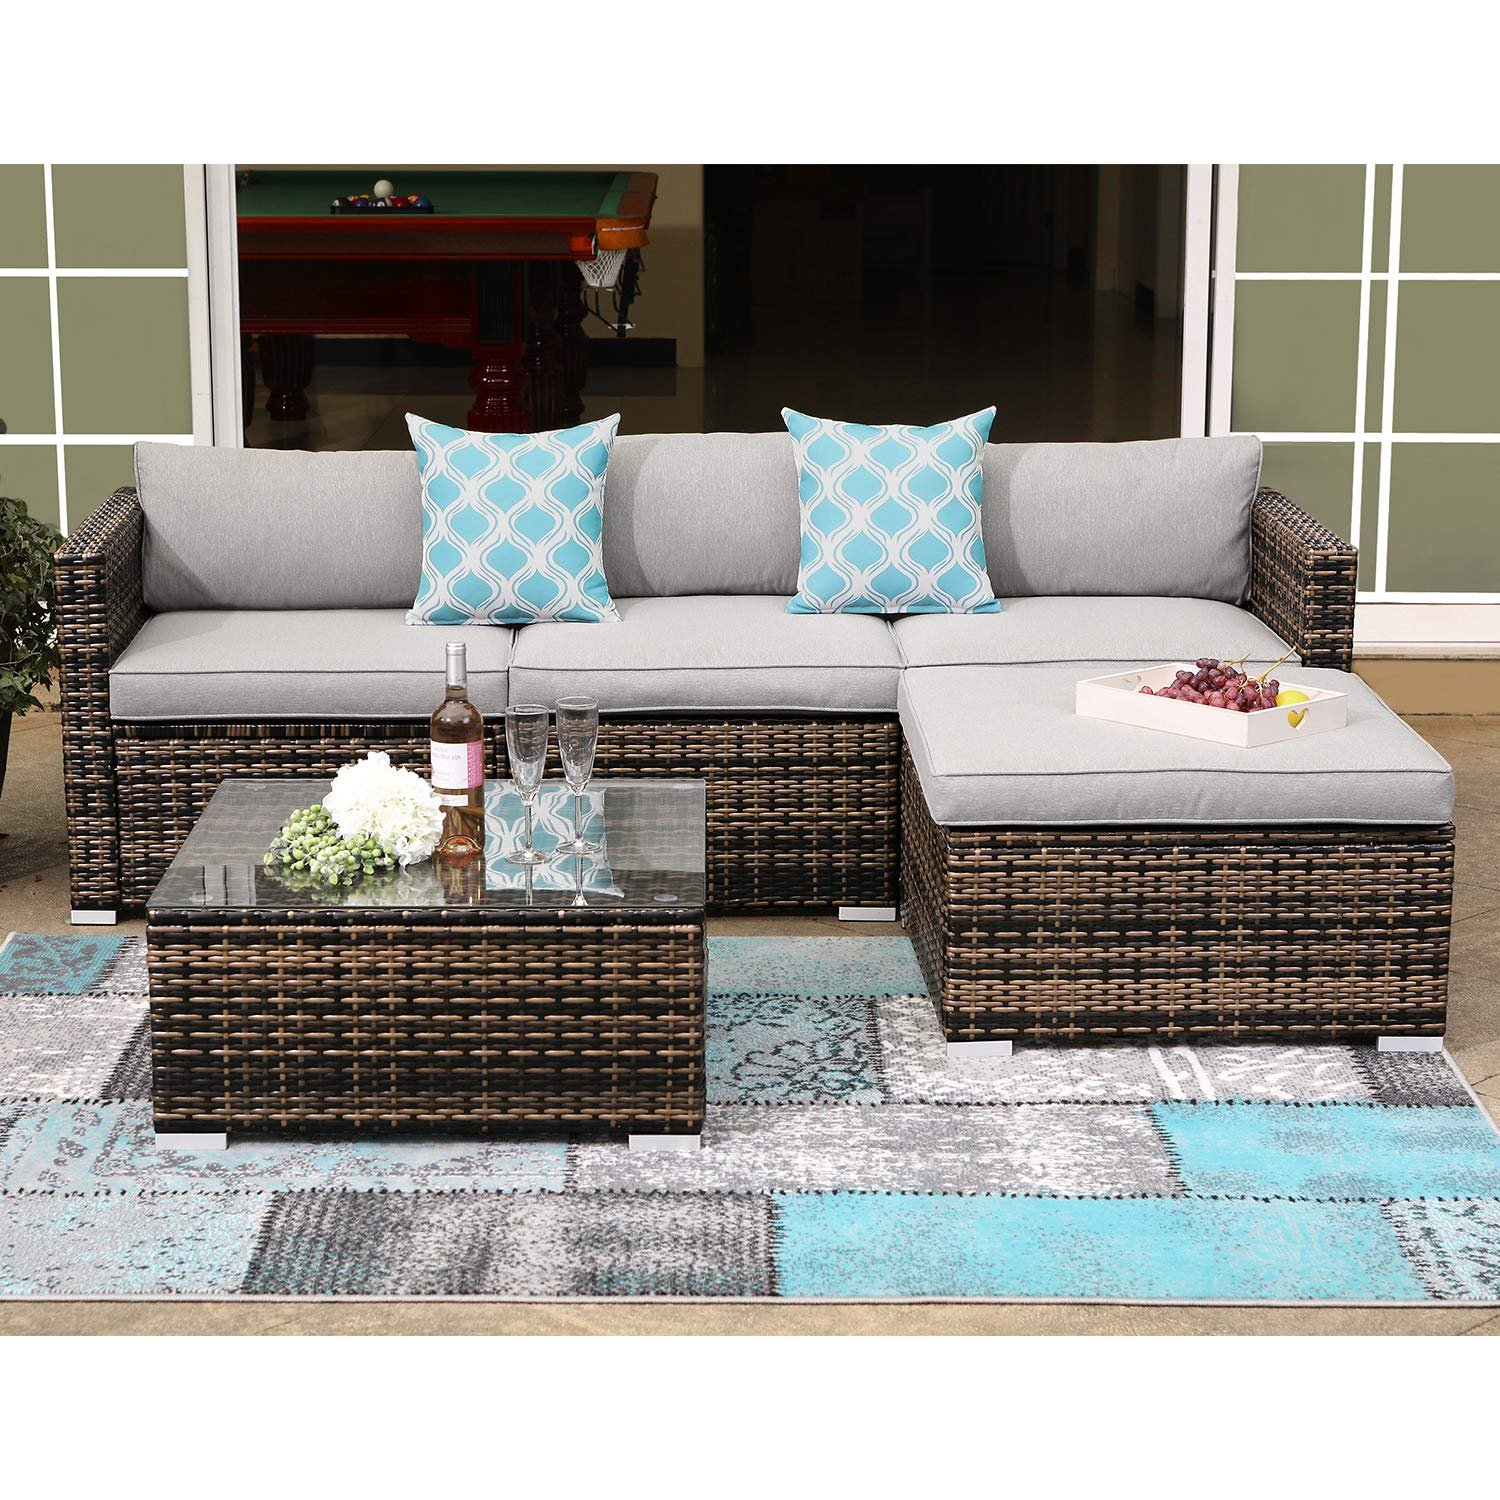 COSIEST 5-Piece Outdoor Furniture All-Weather Mottlewood Brown Wicker Sectional Sofa w Warm Gray Thick Cushions, Glass-Top Coffee Table, 2 Teal Pattern Pillows Incl. Waterproof Cover, Clips by COSIEST